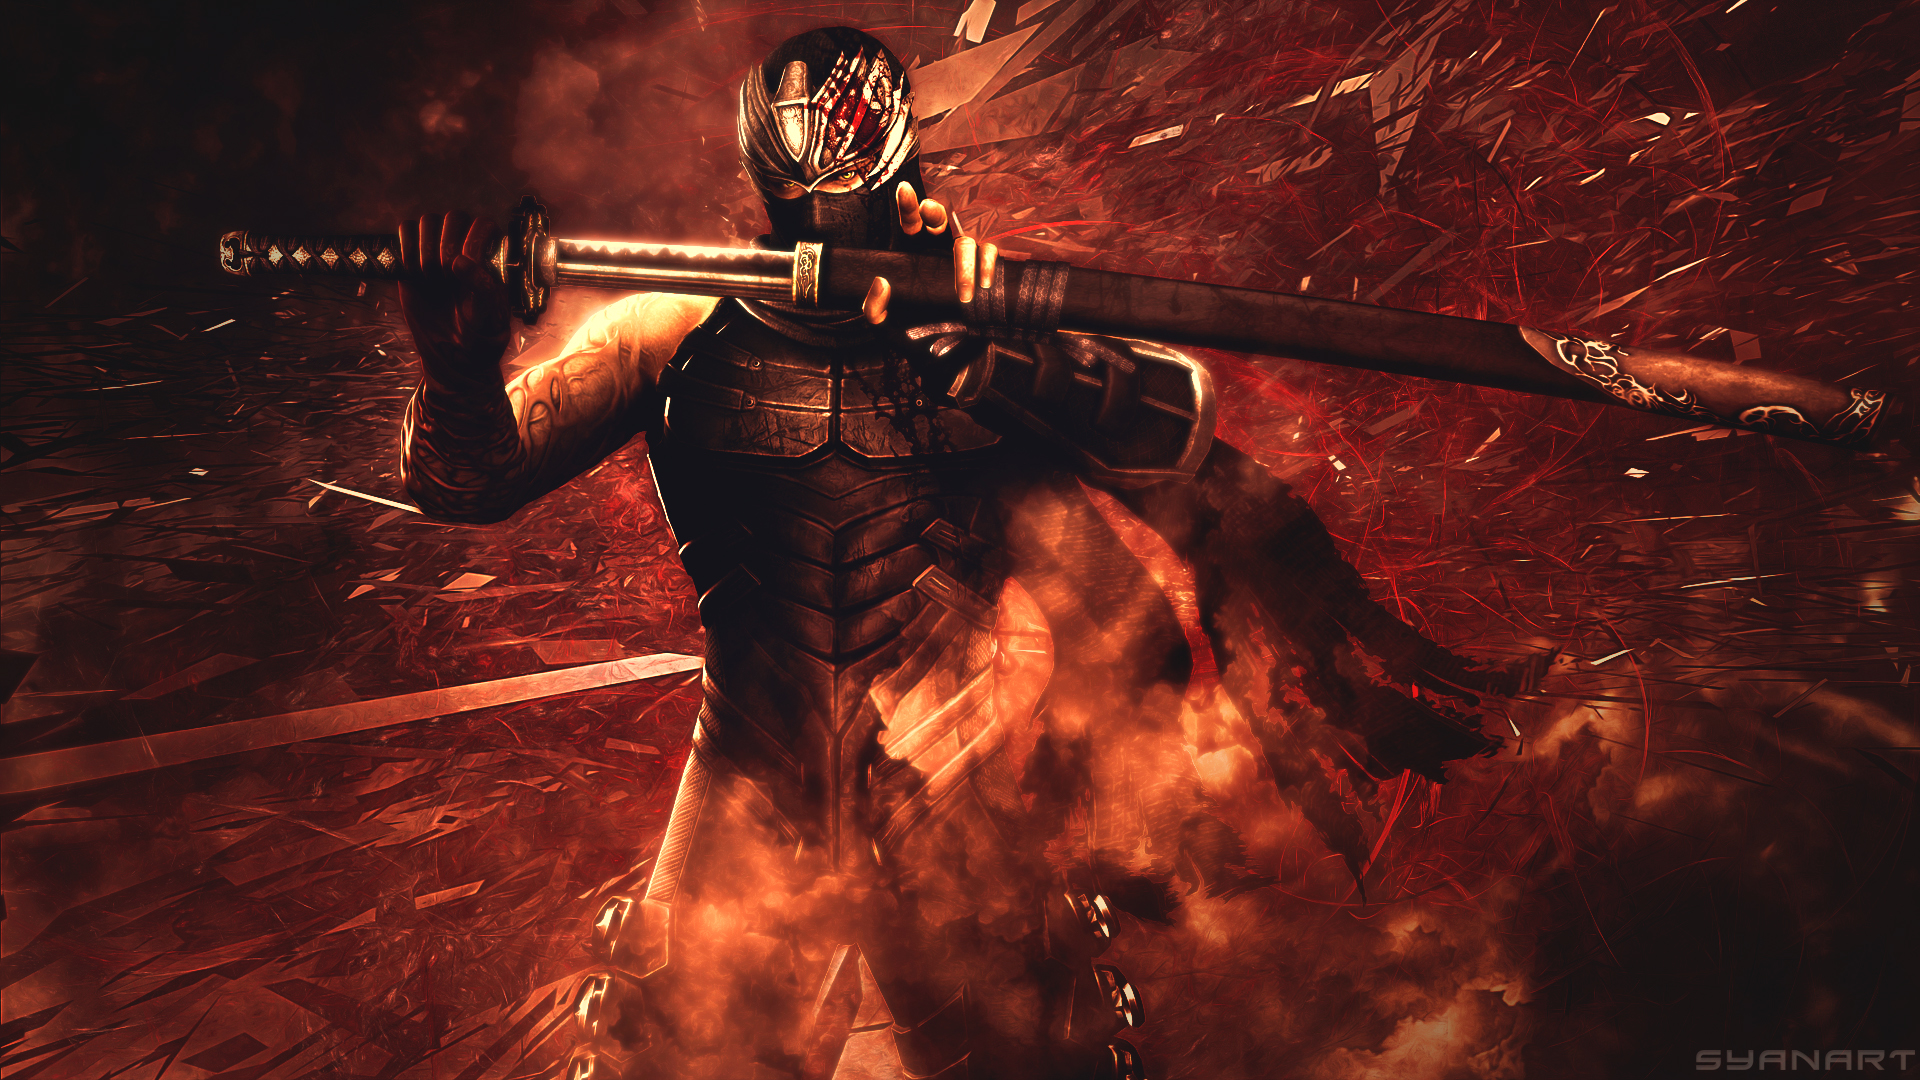 ninja gaiden 3 ryu hayabusa dragon sword wallpaper | syanart